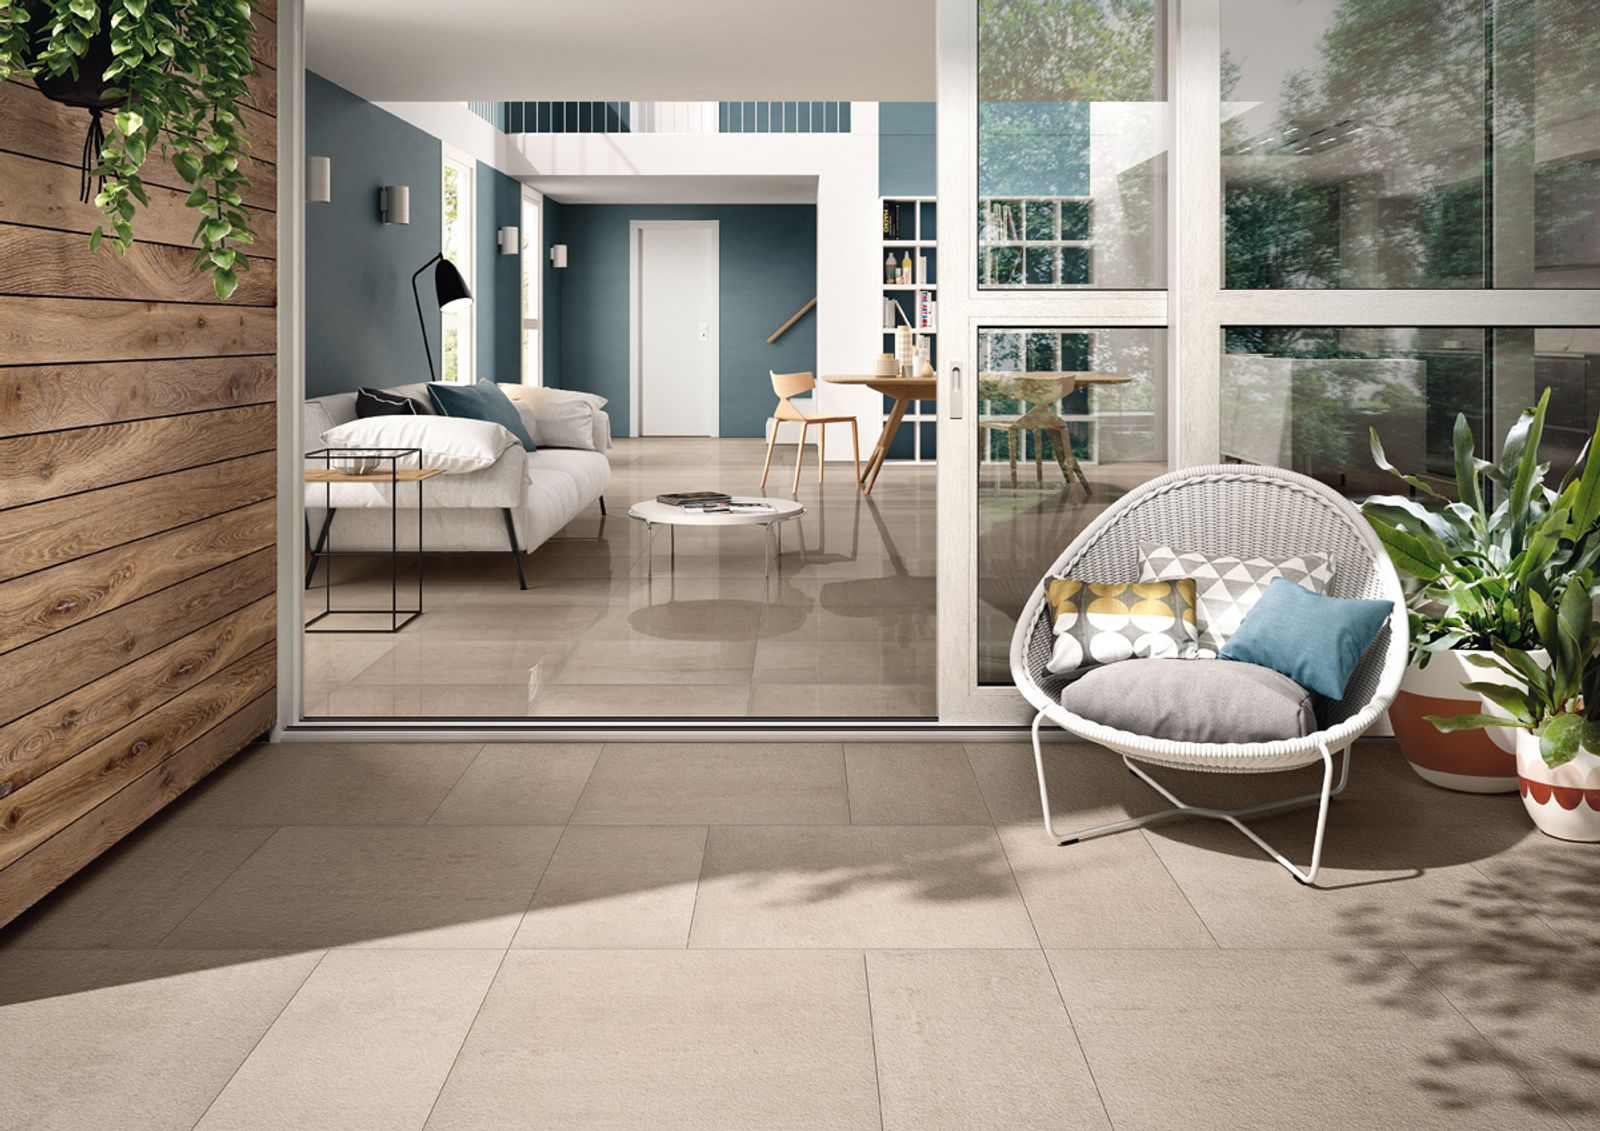 A triumph of technology, it is aimed at the architecture and design sector. The ceramic slabs have a gentle surface movement effect and come in a variety of colours, which can be coordinated, according to new aesthetic requirements.There are a total of seven new shades, pale, medium and medium-dark. Three surface finishes are available: polished, natural and bush-hammered.Re_Micron is completed with Re_Colour wall tiles. Double fired and rectified with the same caliber, these have a glossy look, for rooms with the most up-to-date minimalist appearance. Ideal for the most imposing and memorable designs. - AM REM 3 - Imola Ceramica